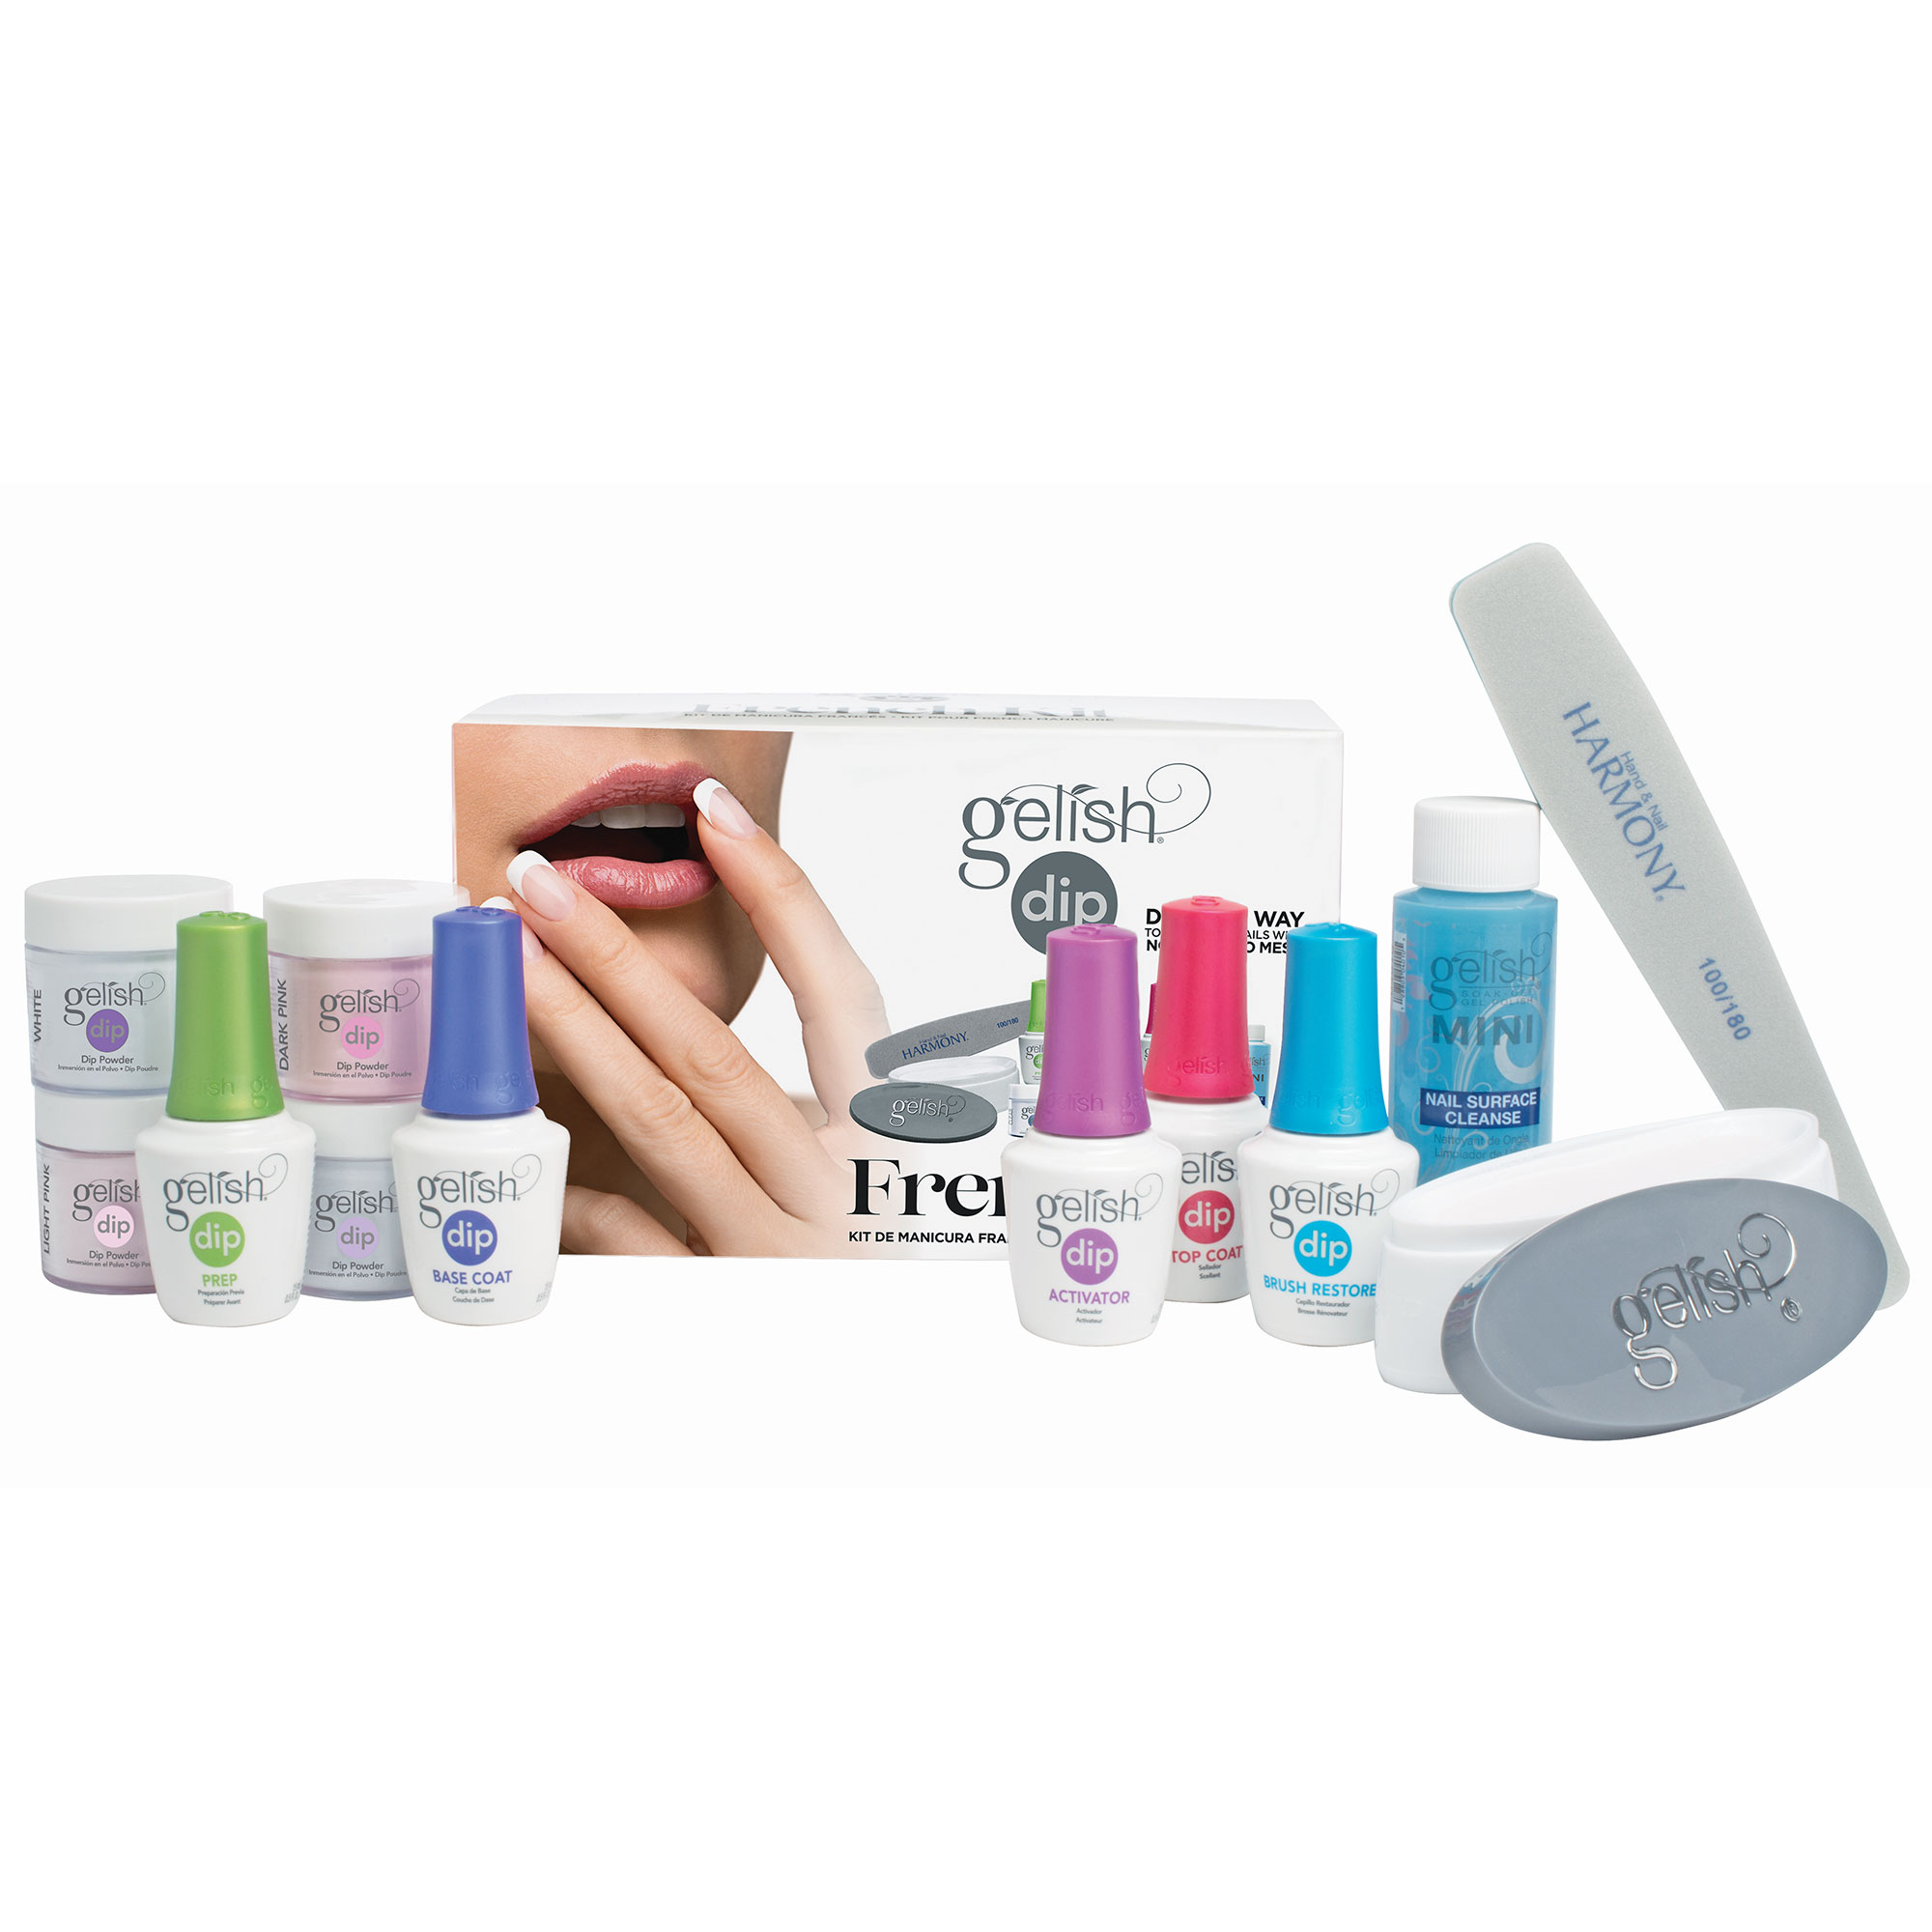 Nail Dip Powder Erfahrung: Gelish Soak Off French Tip Acrylic Powder Nail Polish Dip